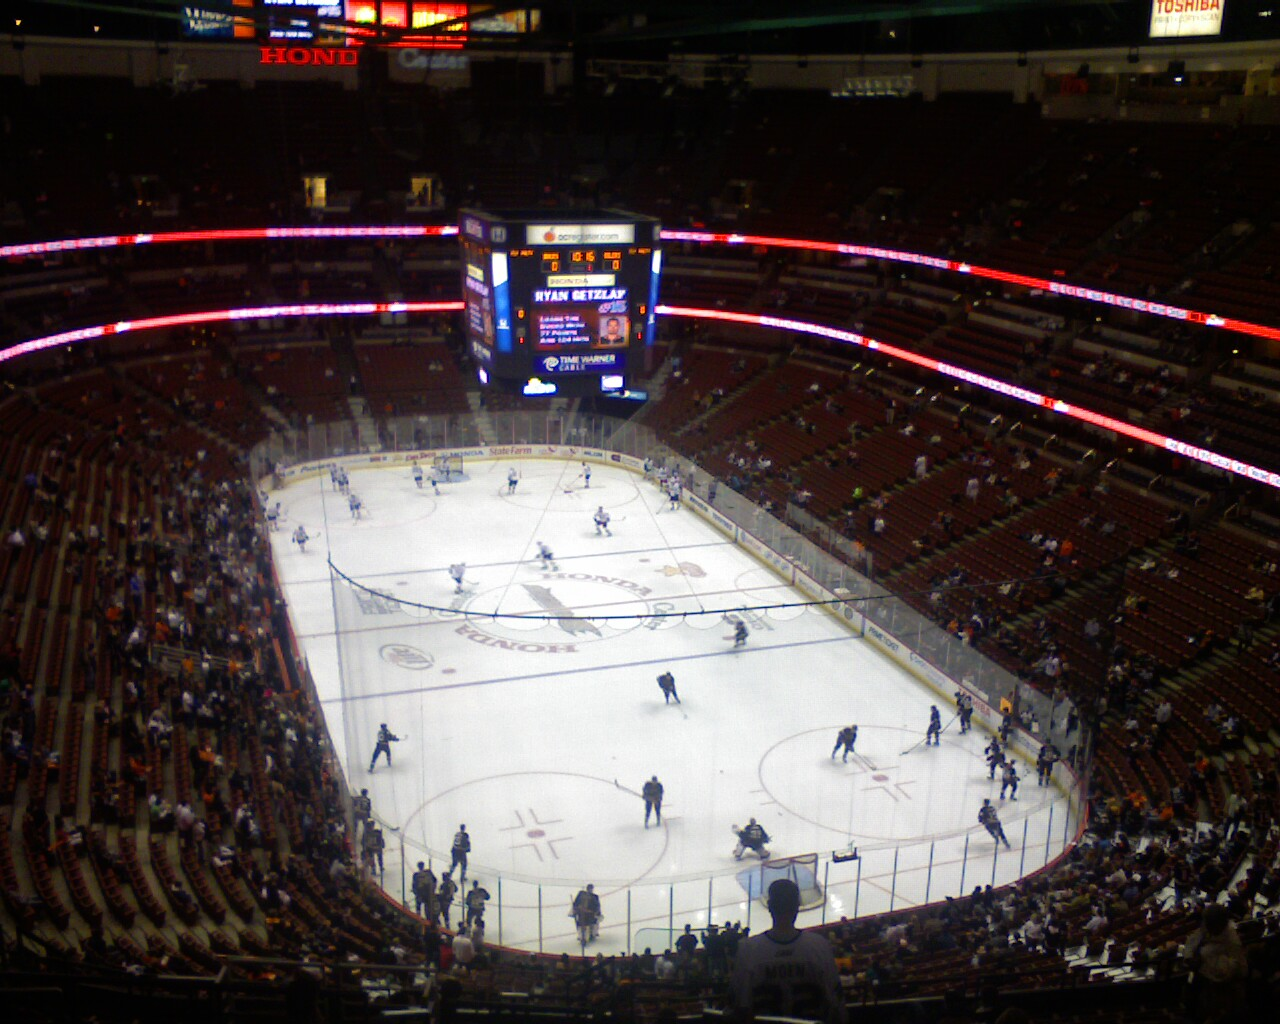 Thats a rink